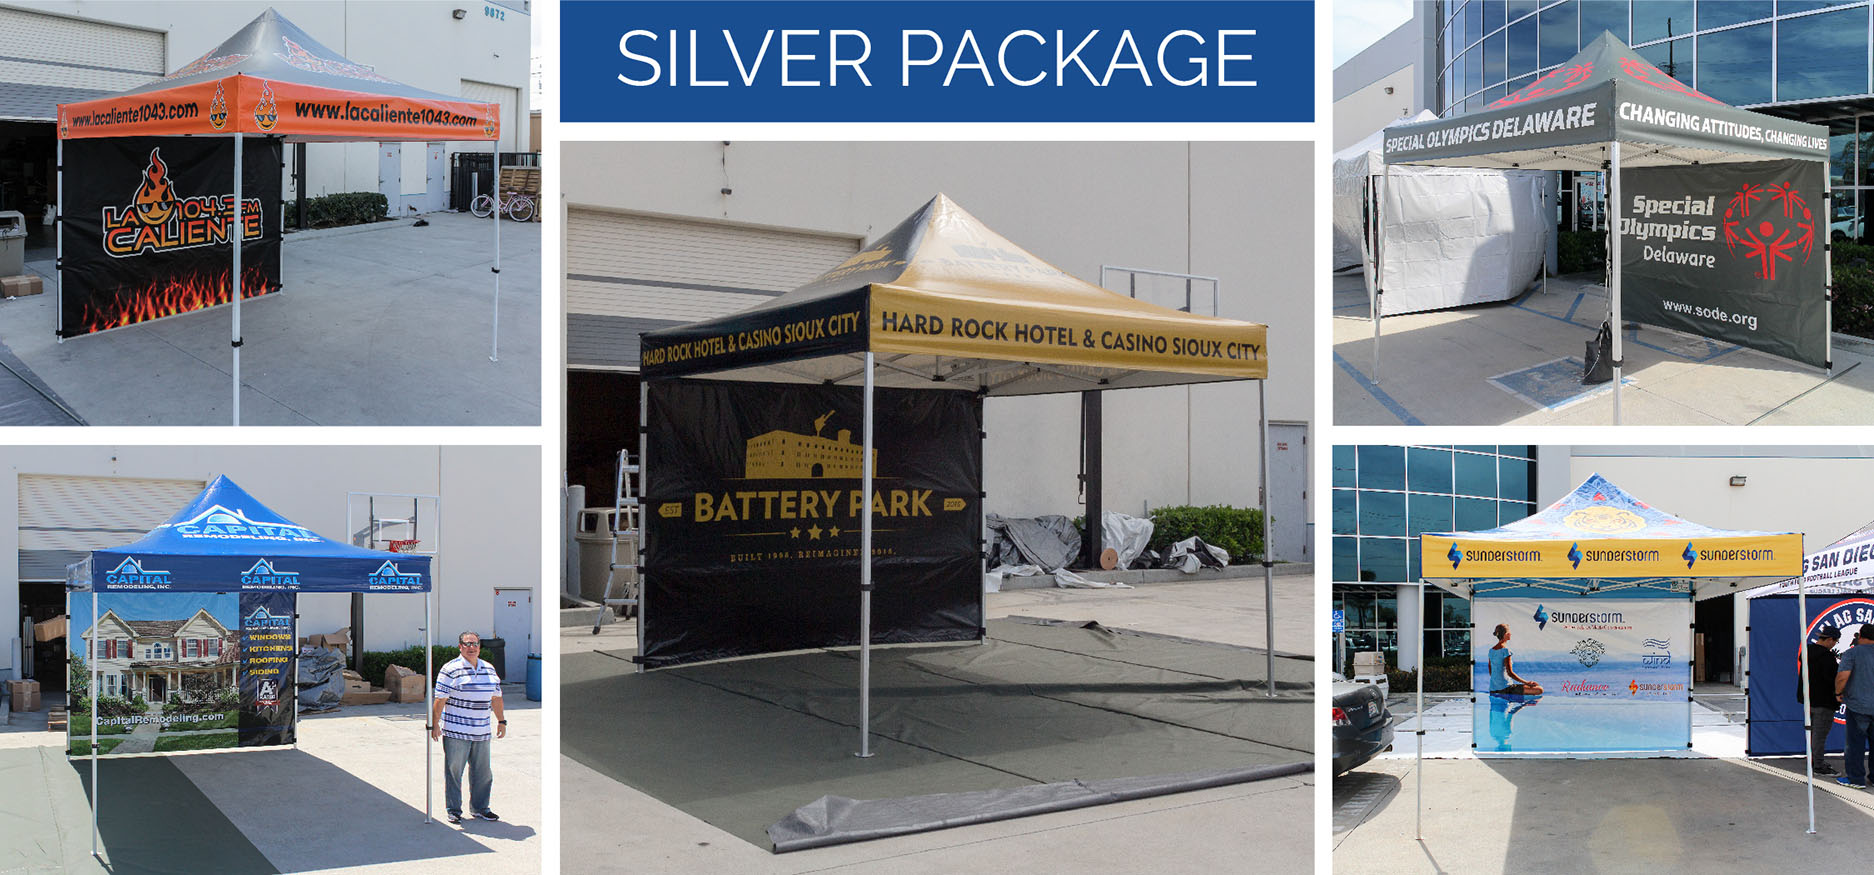 What are canopy packages in general? Well our canopy packages are customized pop up canopies that we have built with custom printing and accessories to ... & What is the Silver Package?